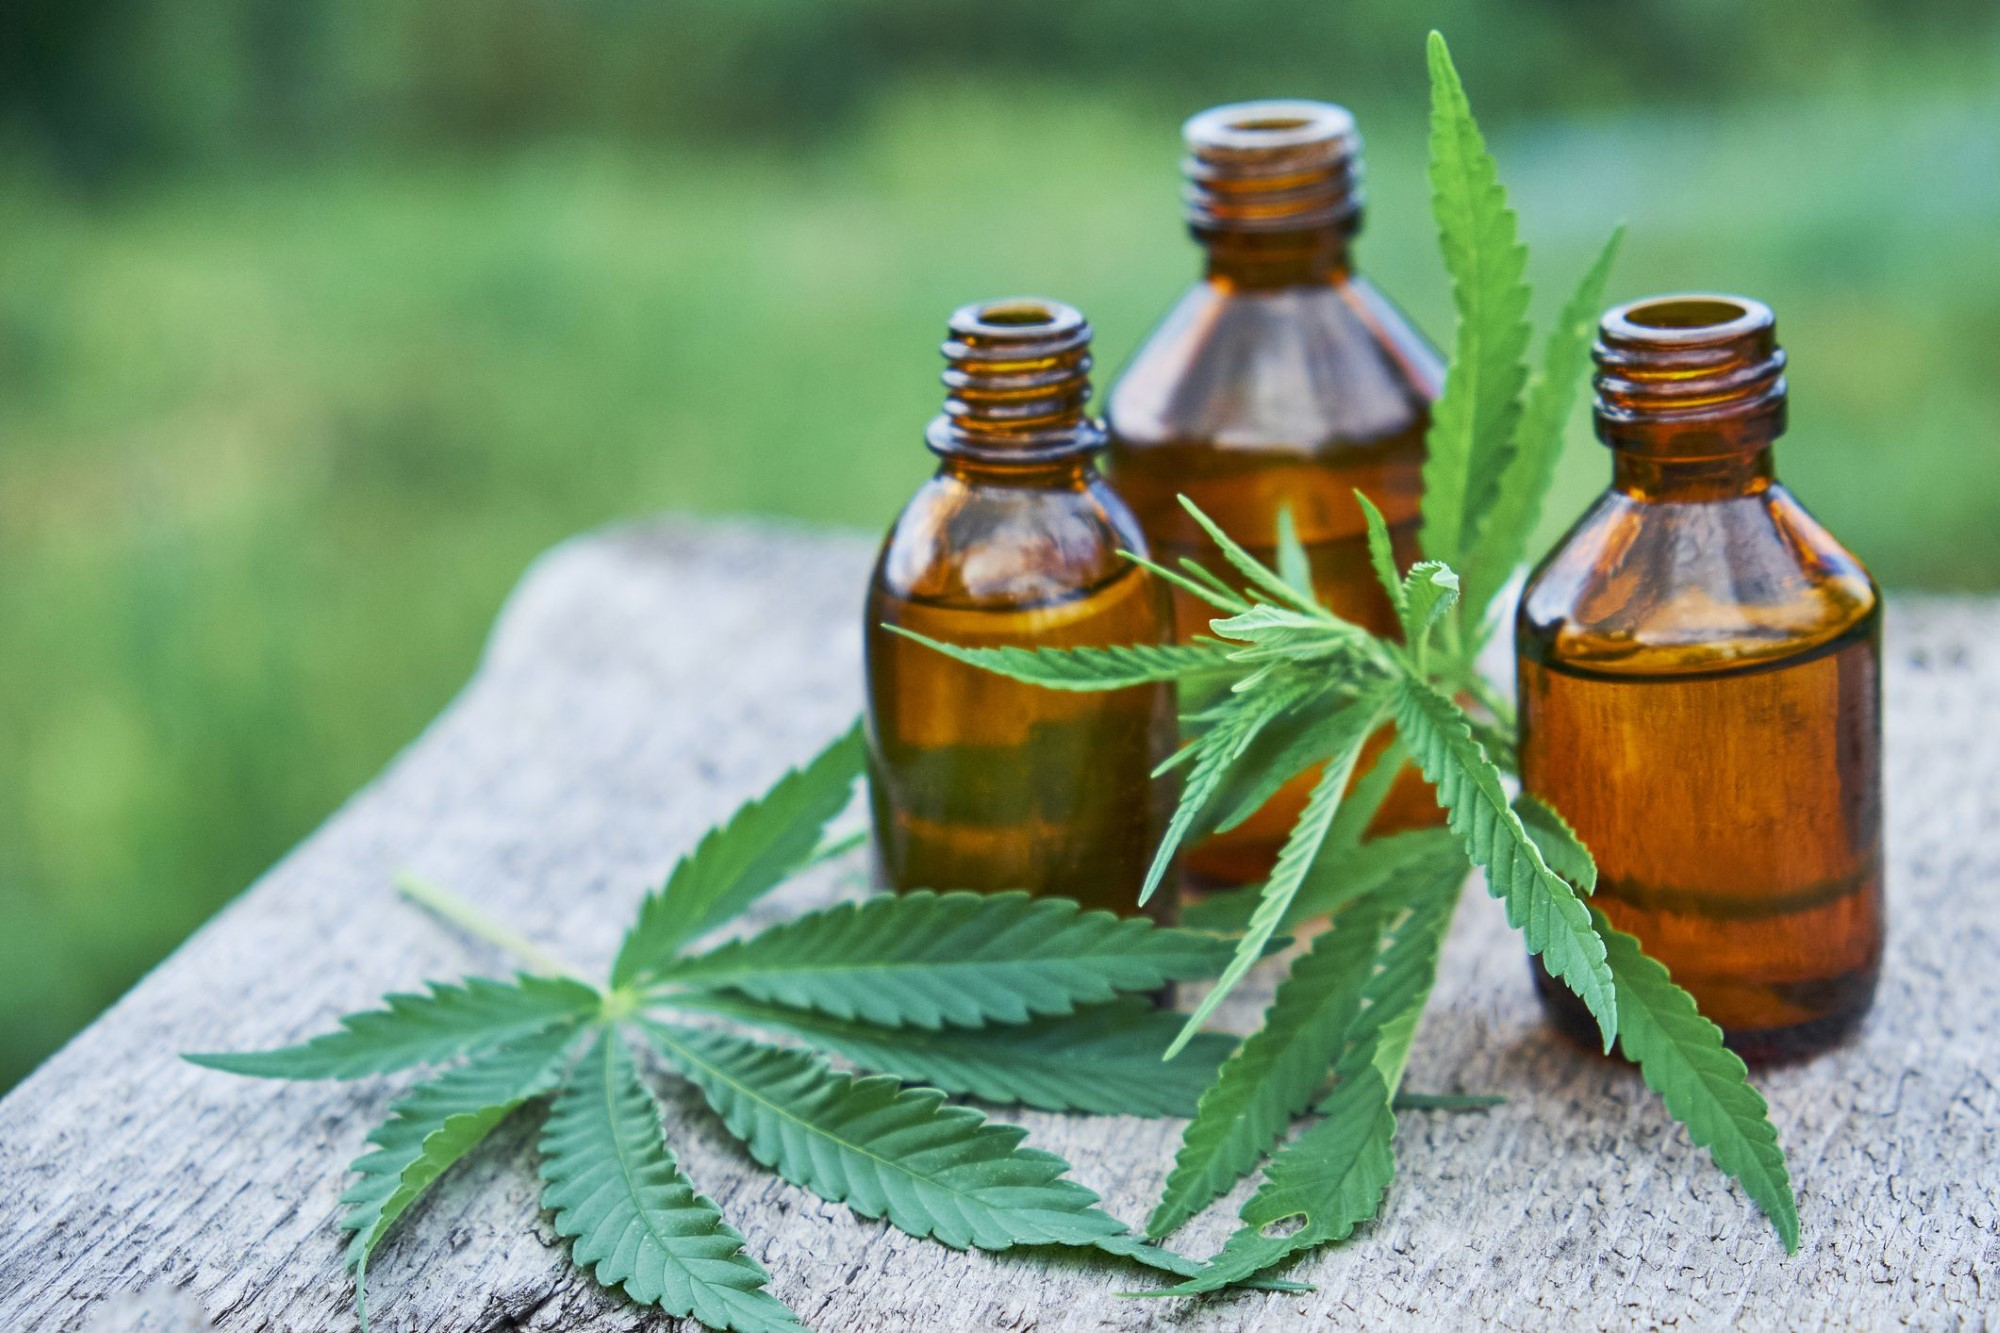 The advantages of CBD tinctures are: